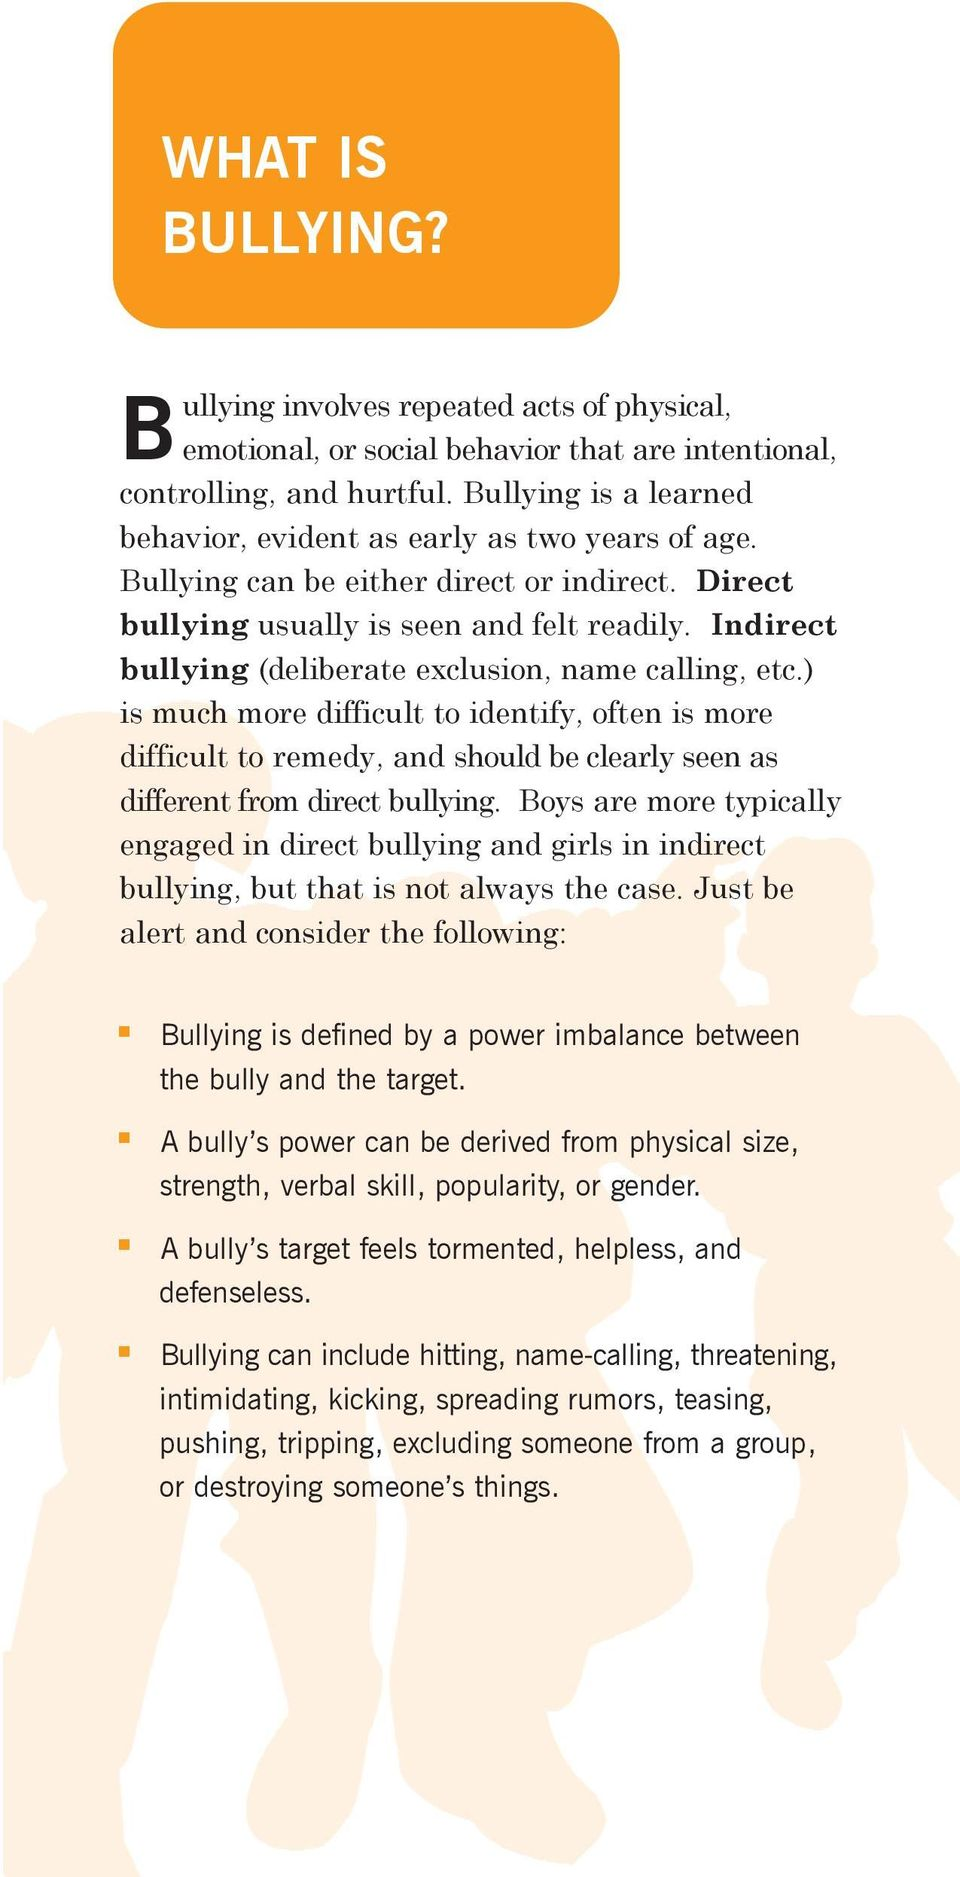 Indirect bullying (deliberate exclusion, name calling, etc.) is much more difficult to identify, often is more difficult to remedy, and should be clearly seen as different from direct bullying.